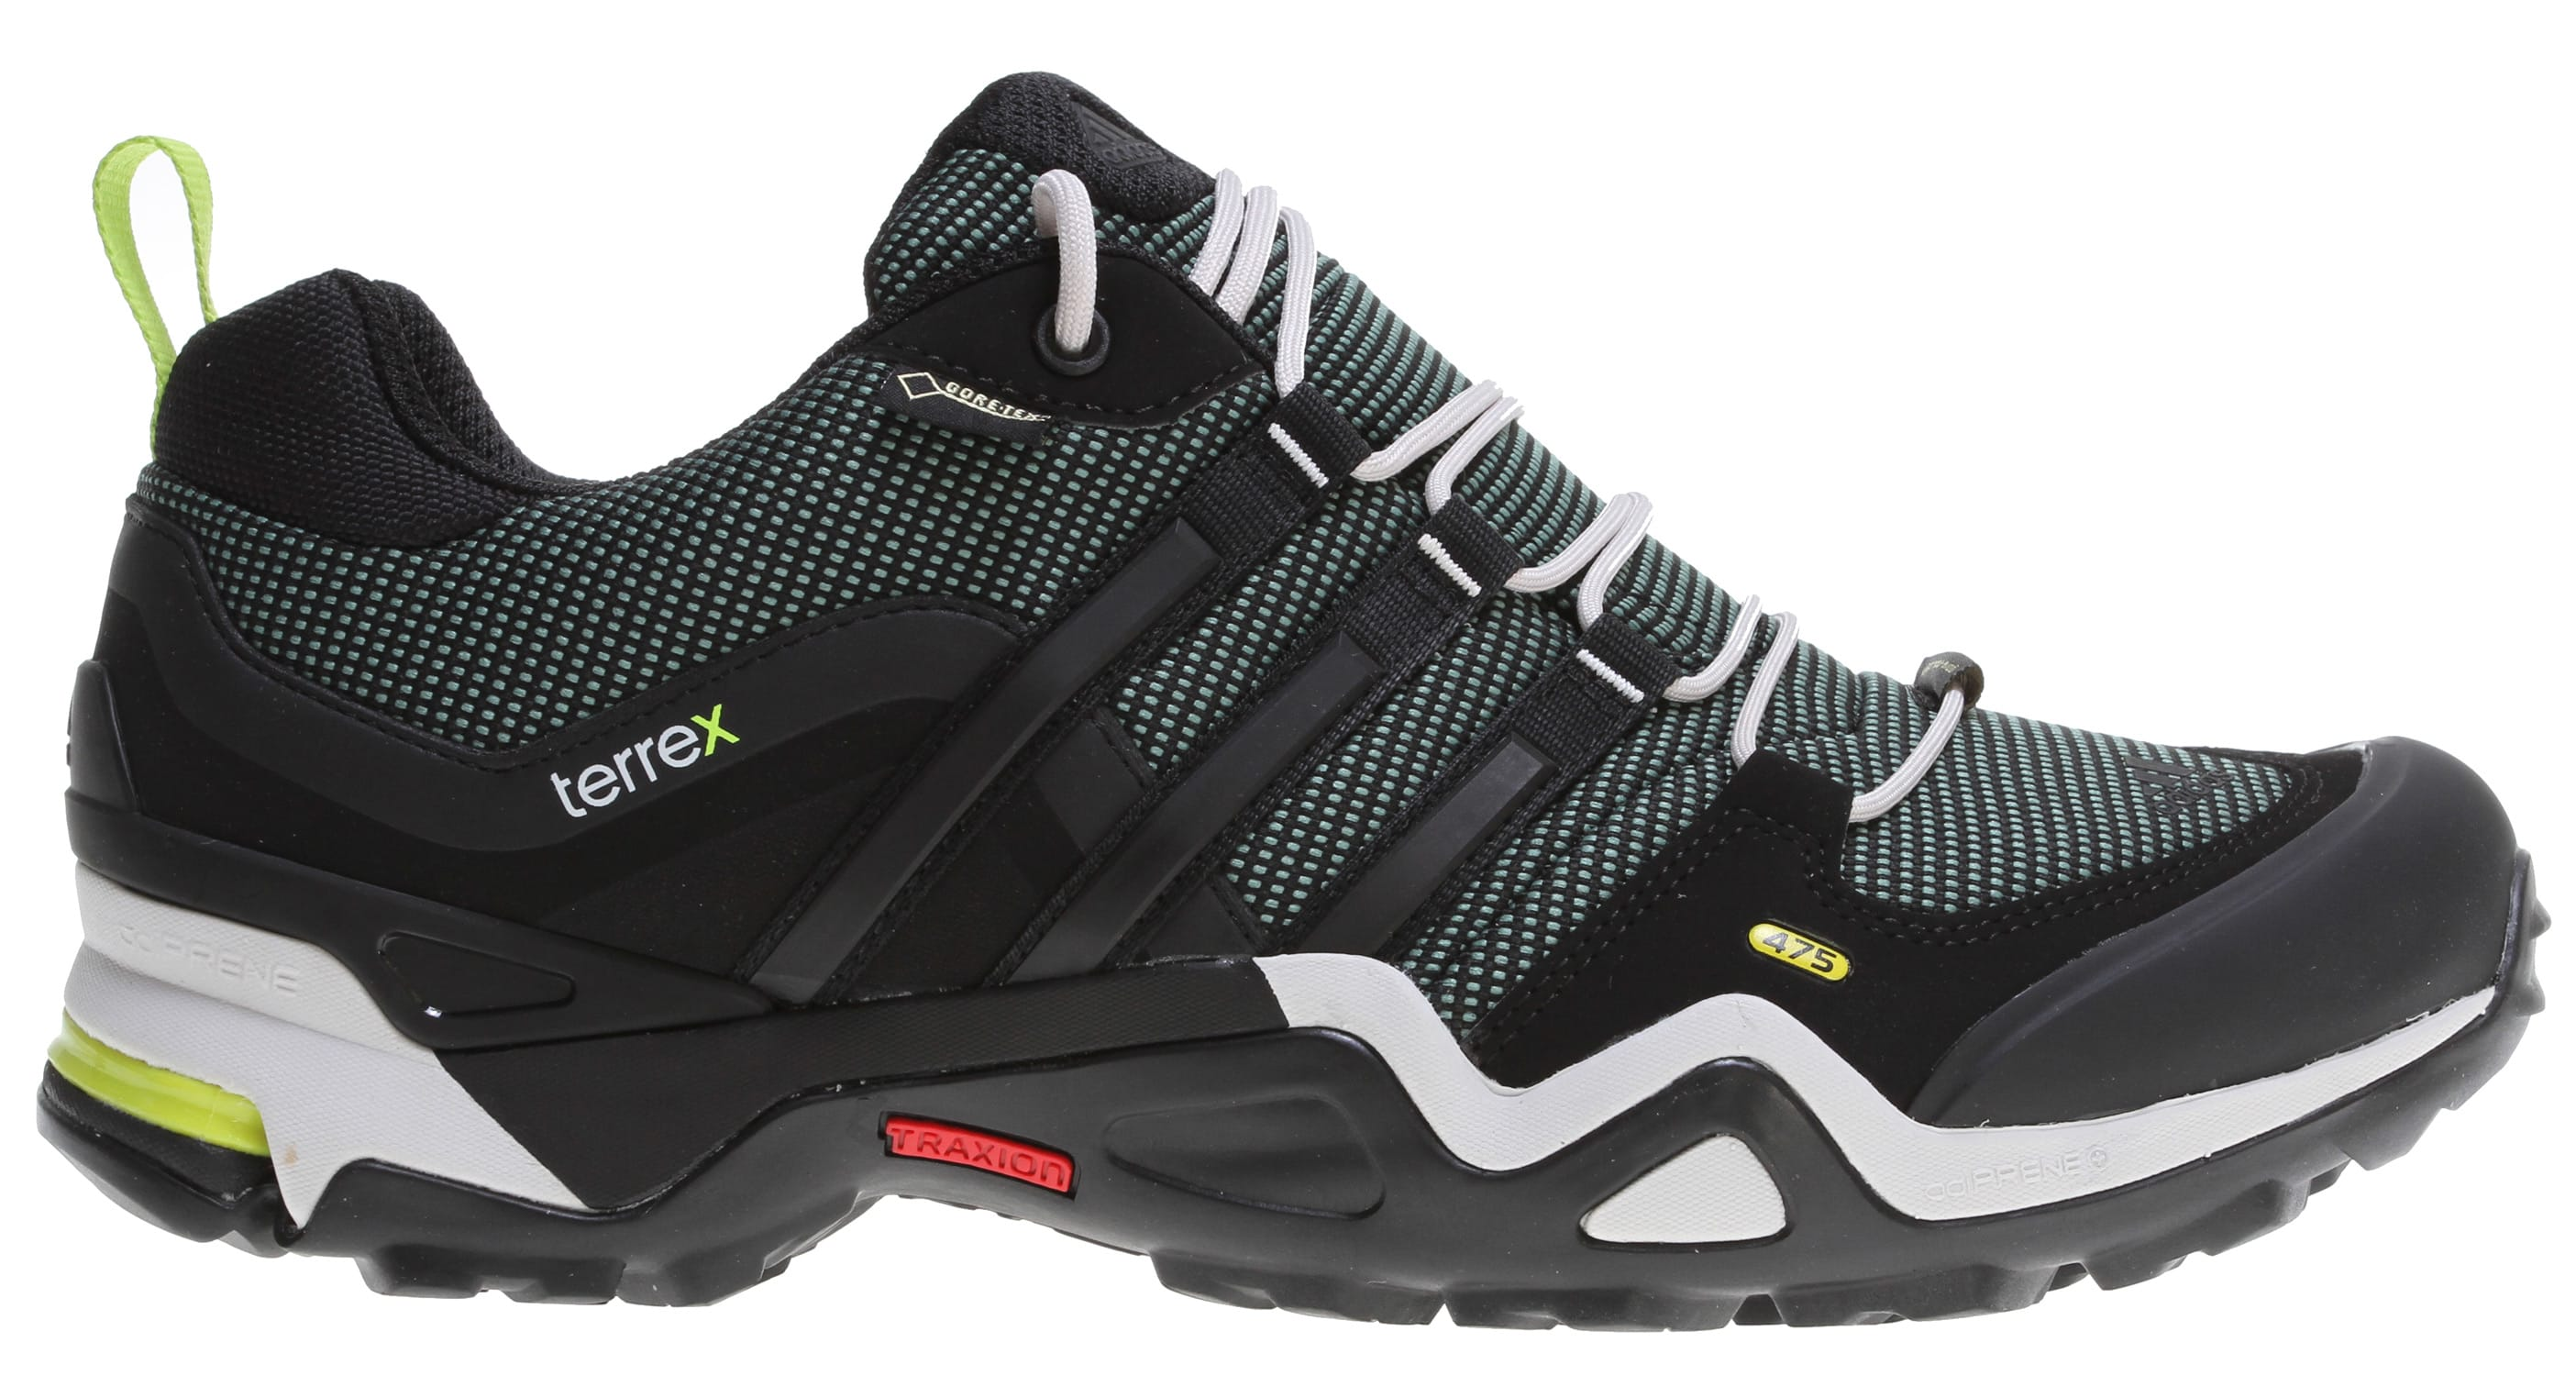 Adidas Fast X Hiking Shoe